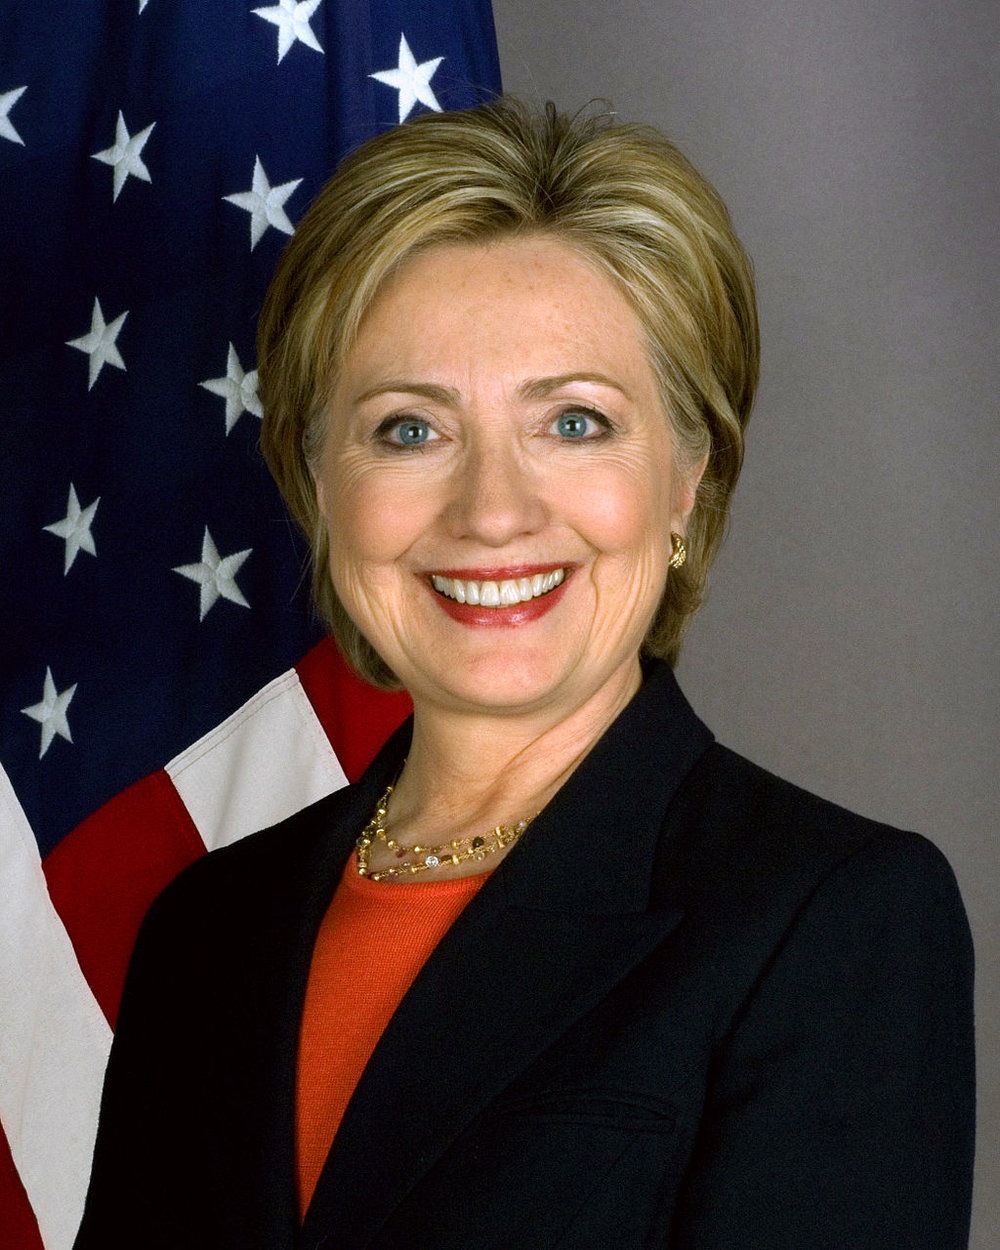 1024px-Hillary_Clinton_official_Secretary_of_State_portrait_crop.jpg